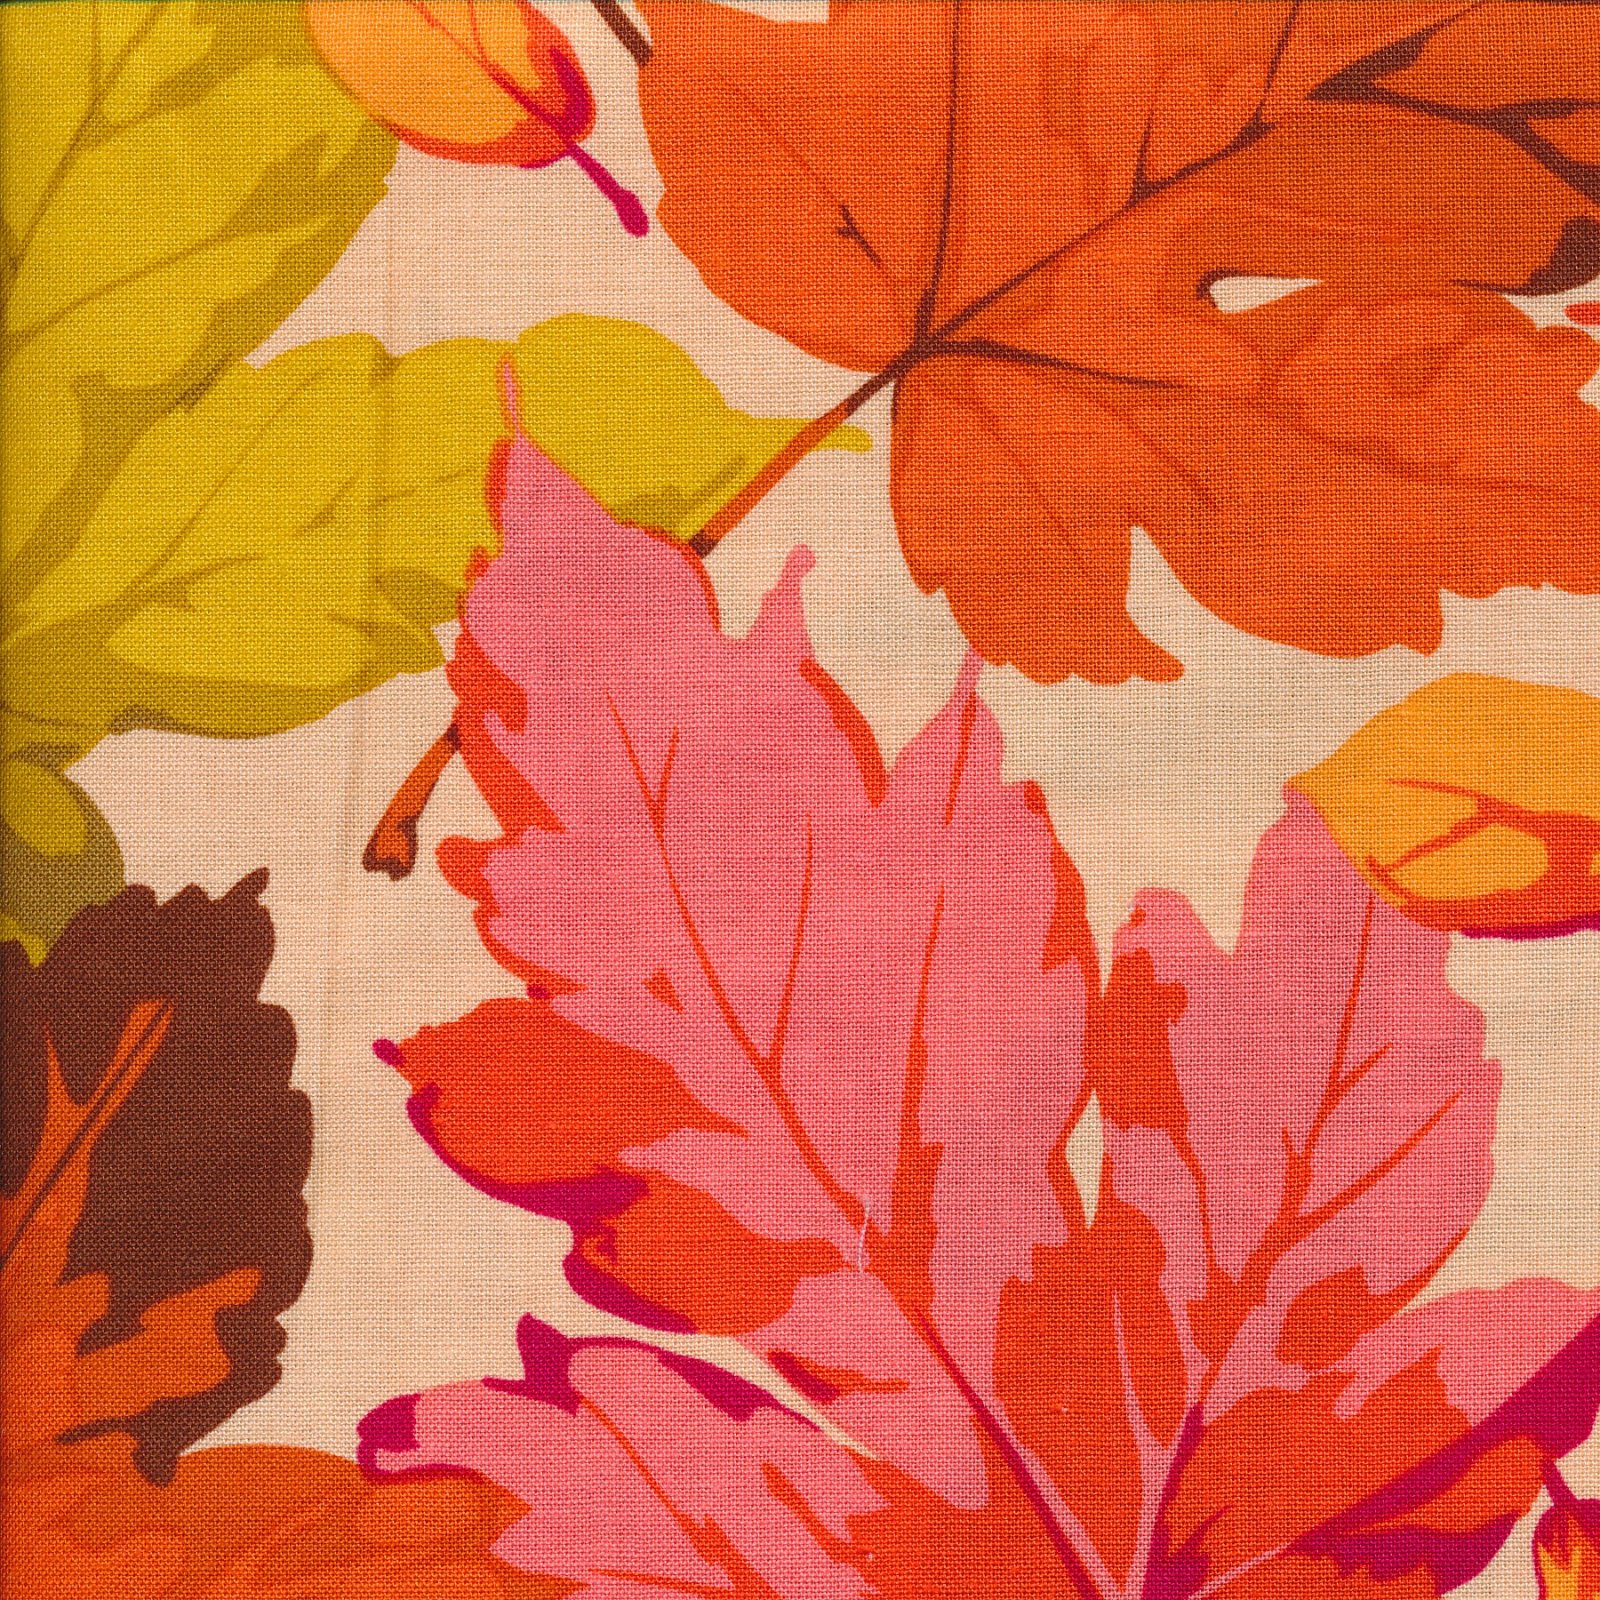 Autumn Medley: Maples in Coral